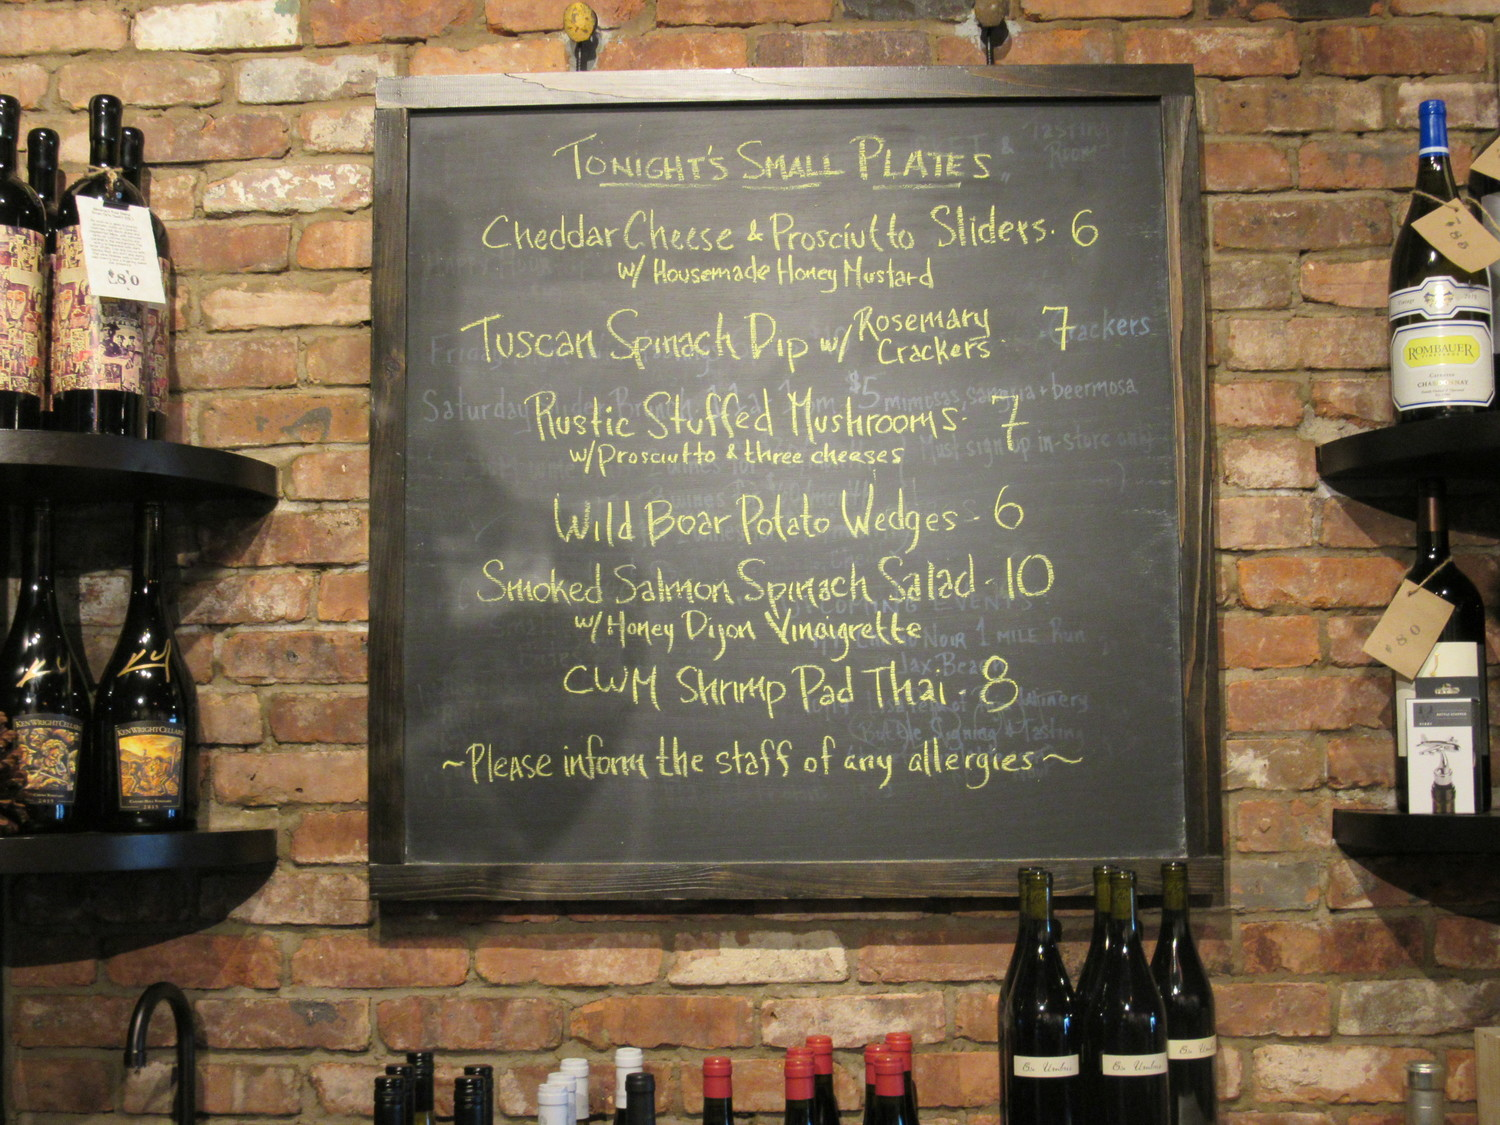 Coastal Wine Market & Tasting Room boasts a new and flavorful menu selection.